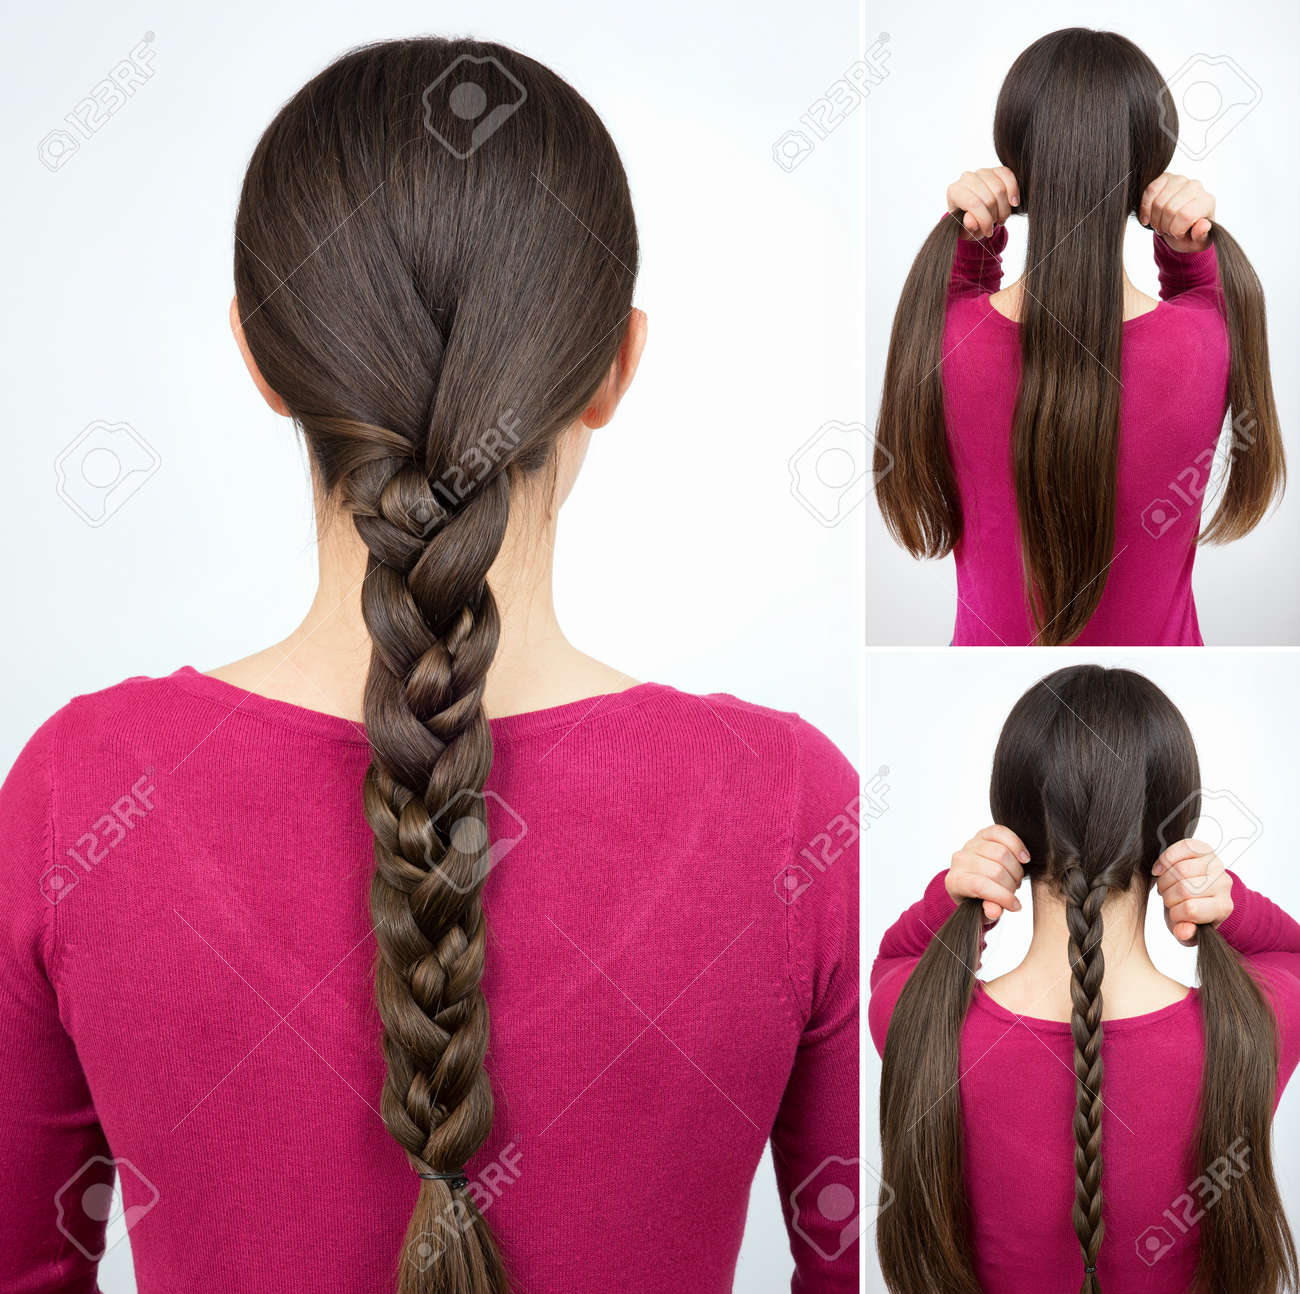 Hairstyle One Simple Braid Tutorial Stock Photo Picture And Royalty